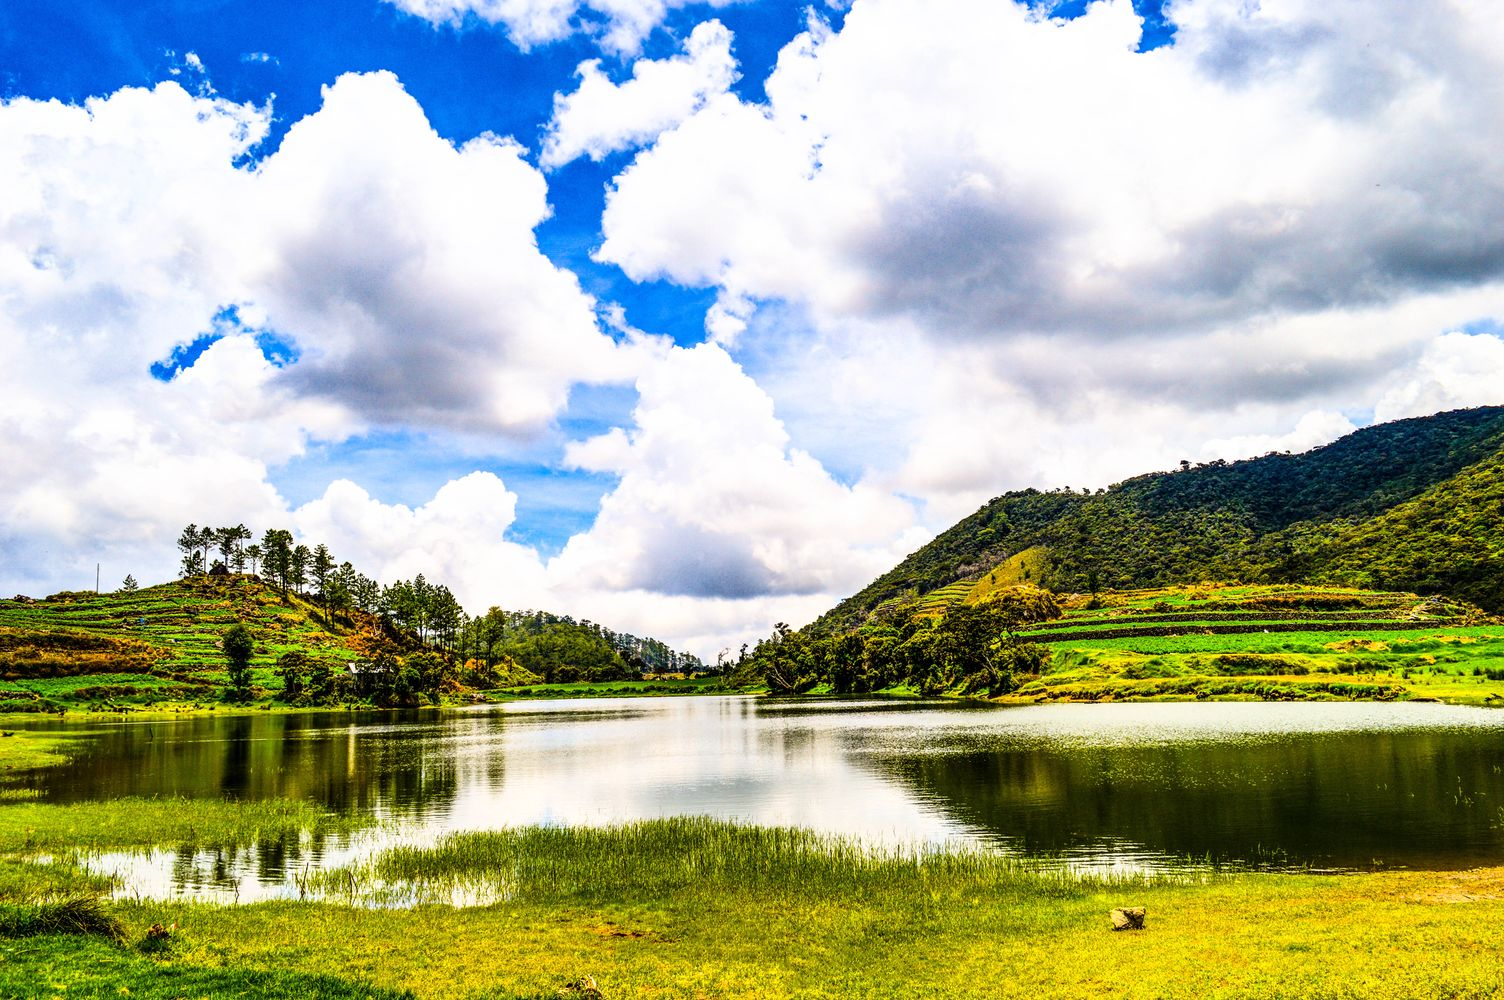 Clouds are reflected on a lake in the midst of a grassy field in Benguet, Philippines